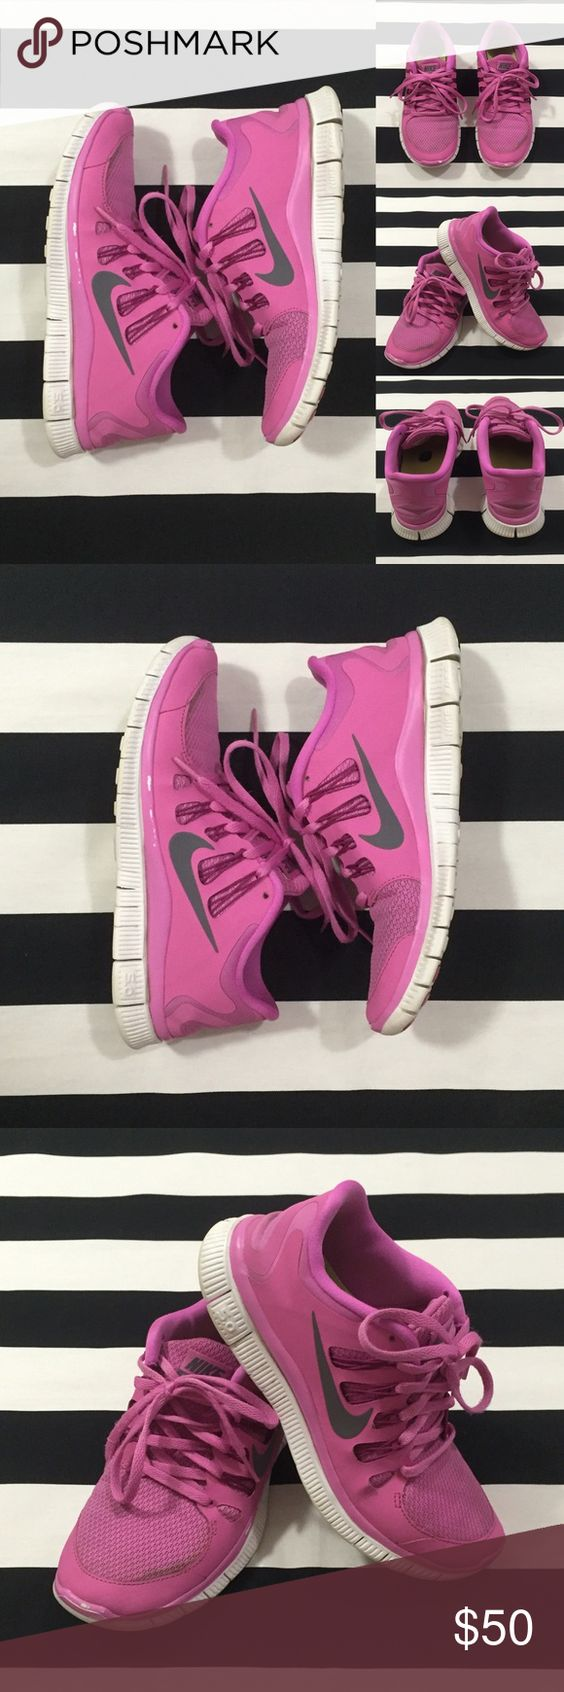 [Nike] free 5.0 women's athletic shoes sz7.5 [Nike] free 5.0 women's athletic shoes sz7.5 •🆕listing •pre-loved/used condition •pink/white with silver swoosh design •shoes have been washed/cleaned •darker areas on pink mesh, did not wash out •some peeling of pink paint and color changes to rubber sides and soles from use •Offers welcomed using the offer feature or bundle for the best discount Nike Shoes Athletic Shoes